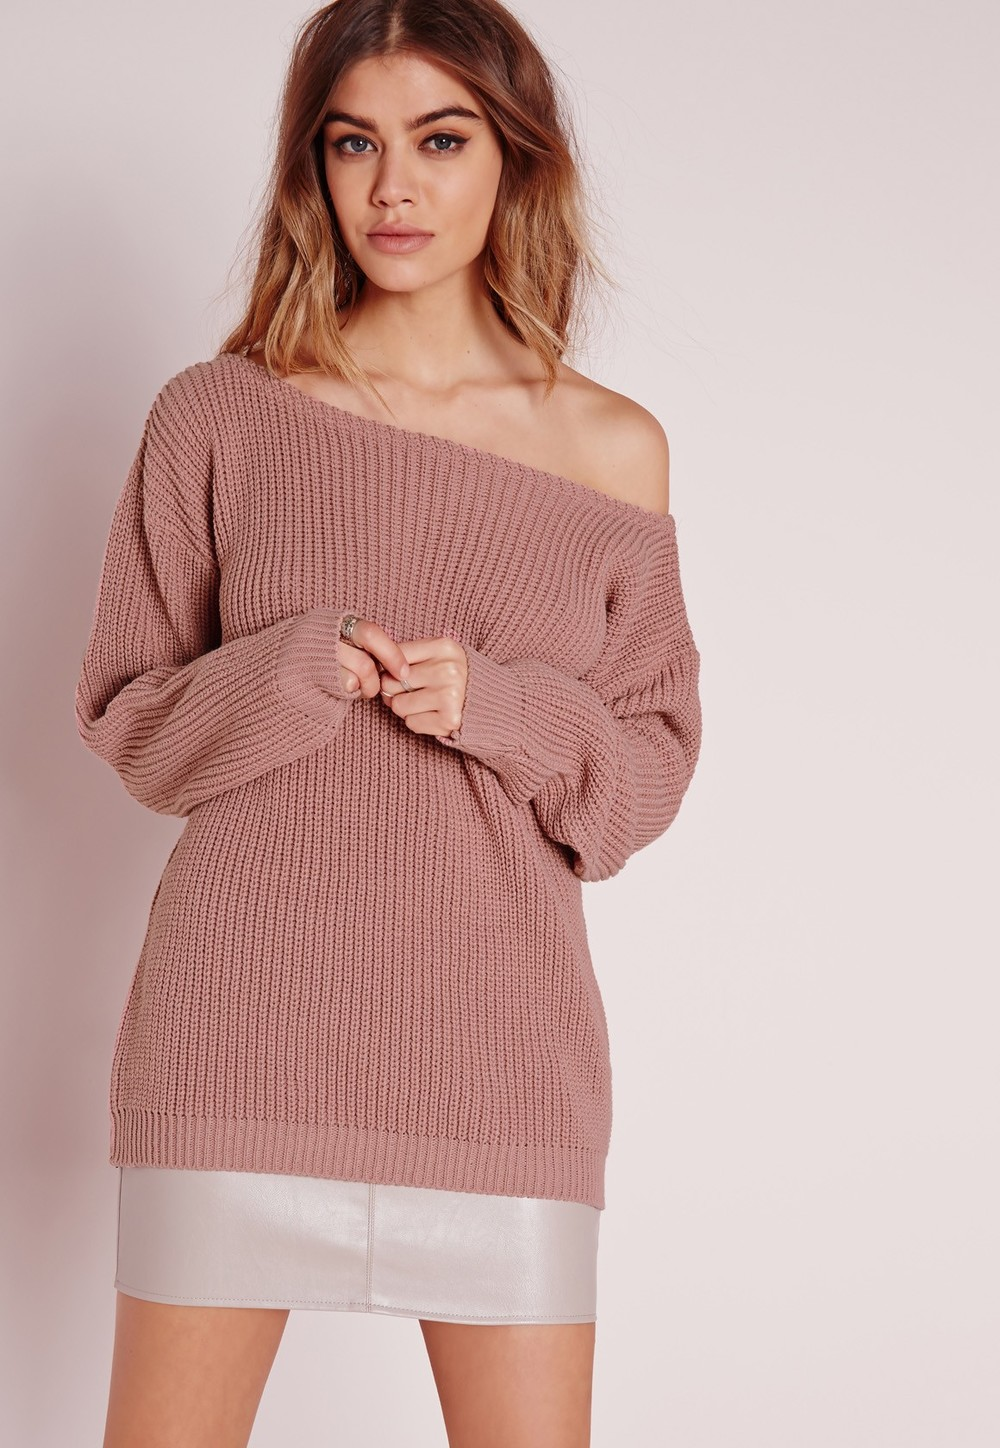 Pink off the shoulder sweater, $26 at MisguidedUS.com.